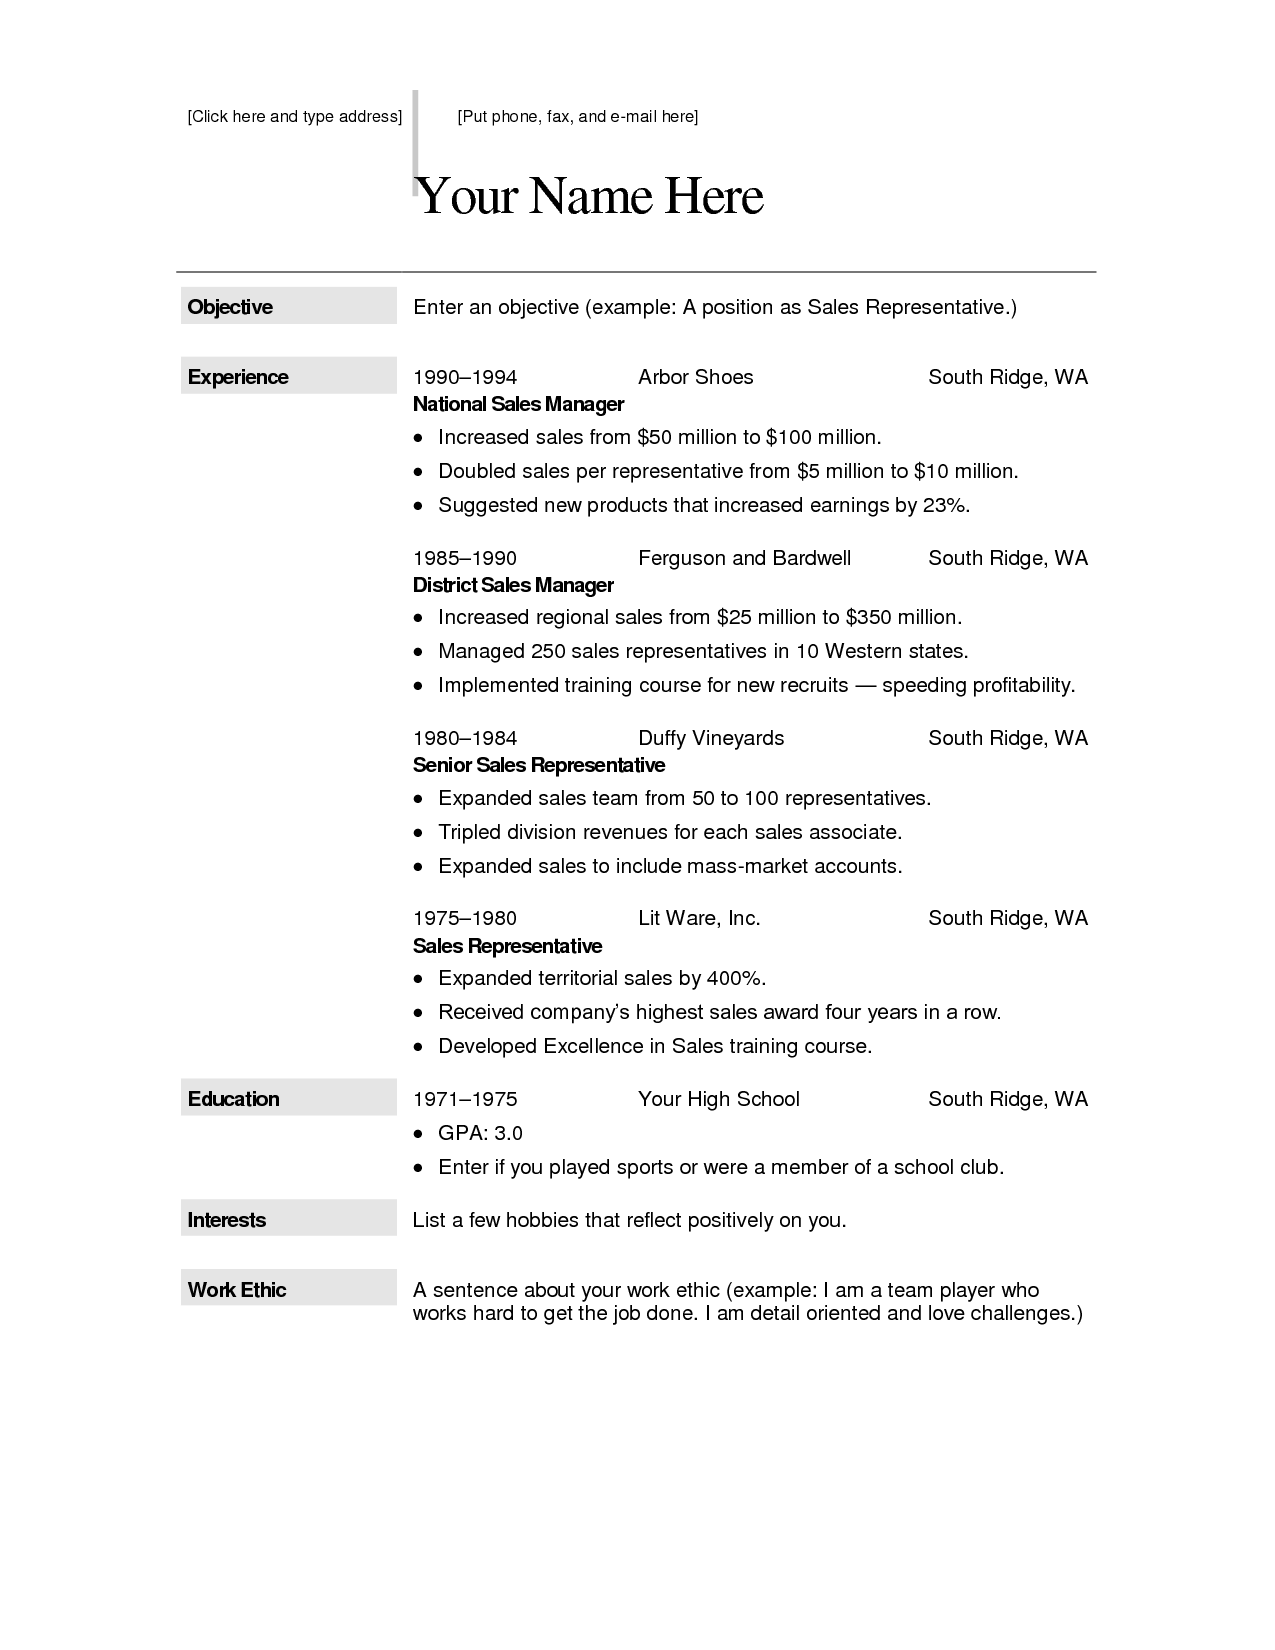 free creative resume templates for macfree creative resume templates for mac modern resume template - Resume Templates To Download